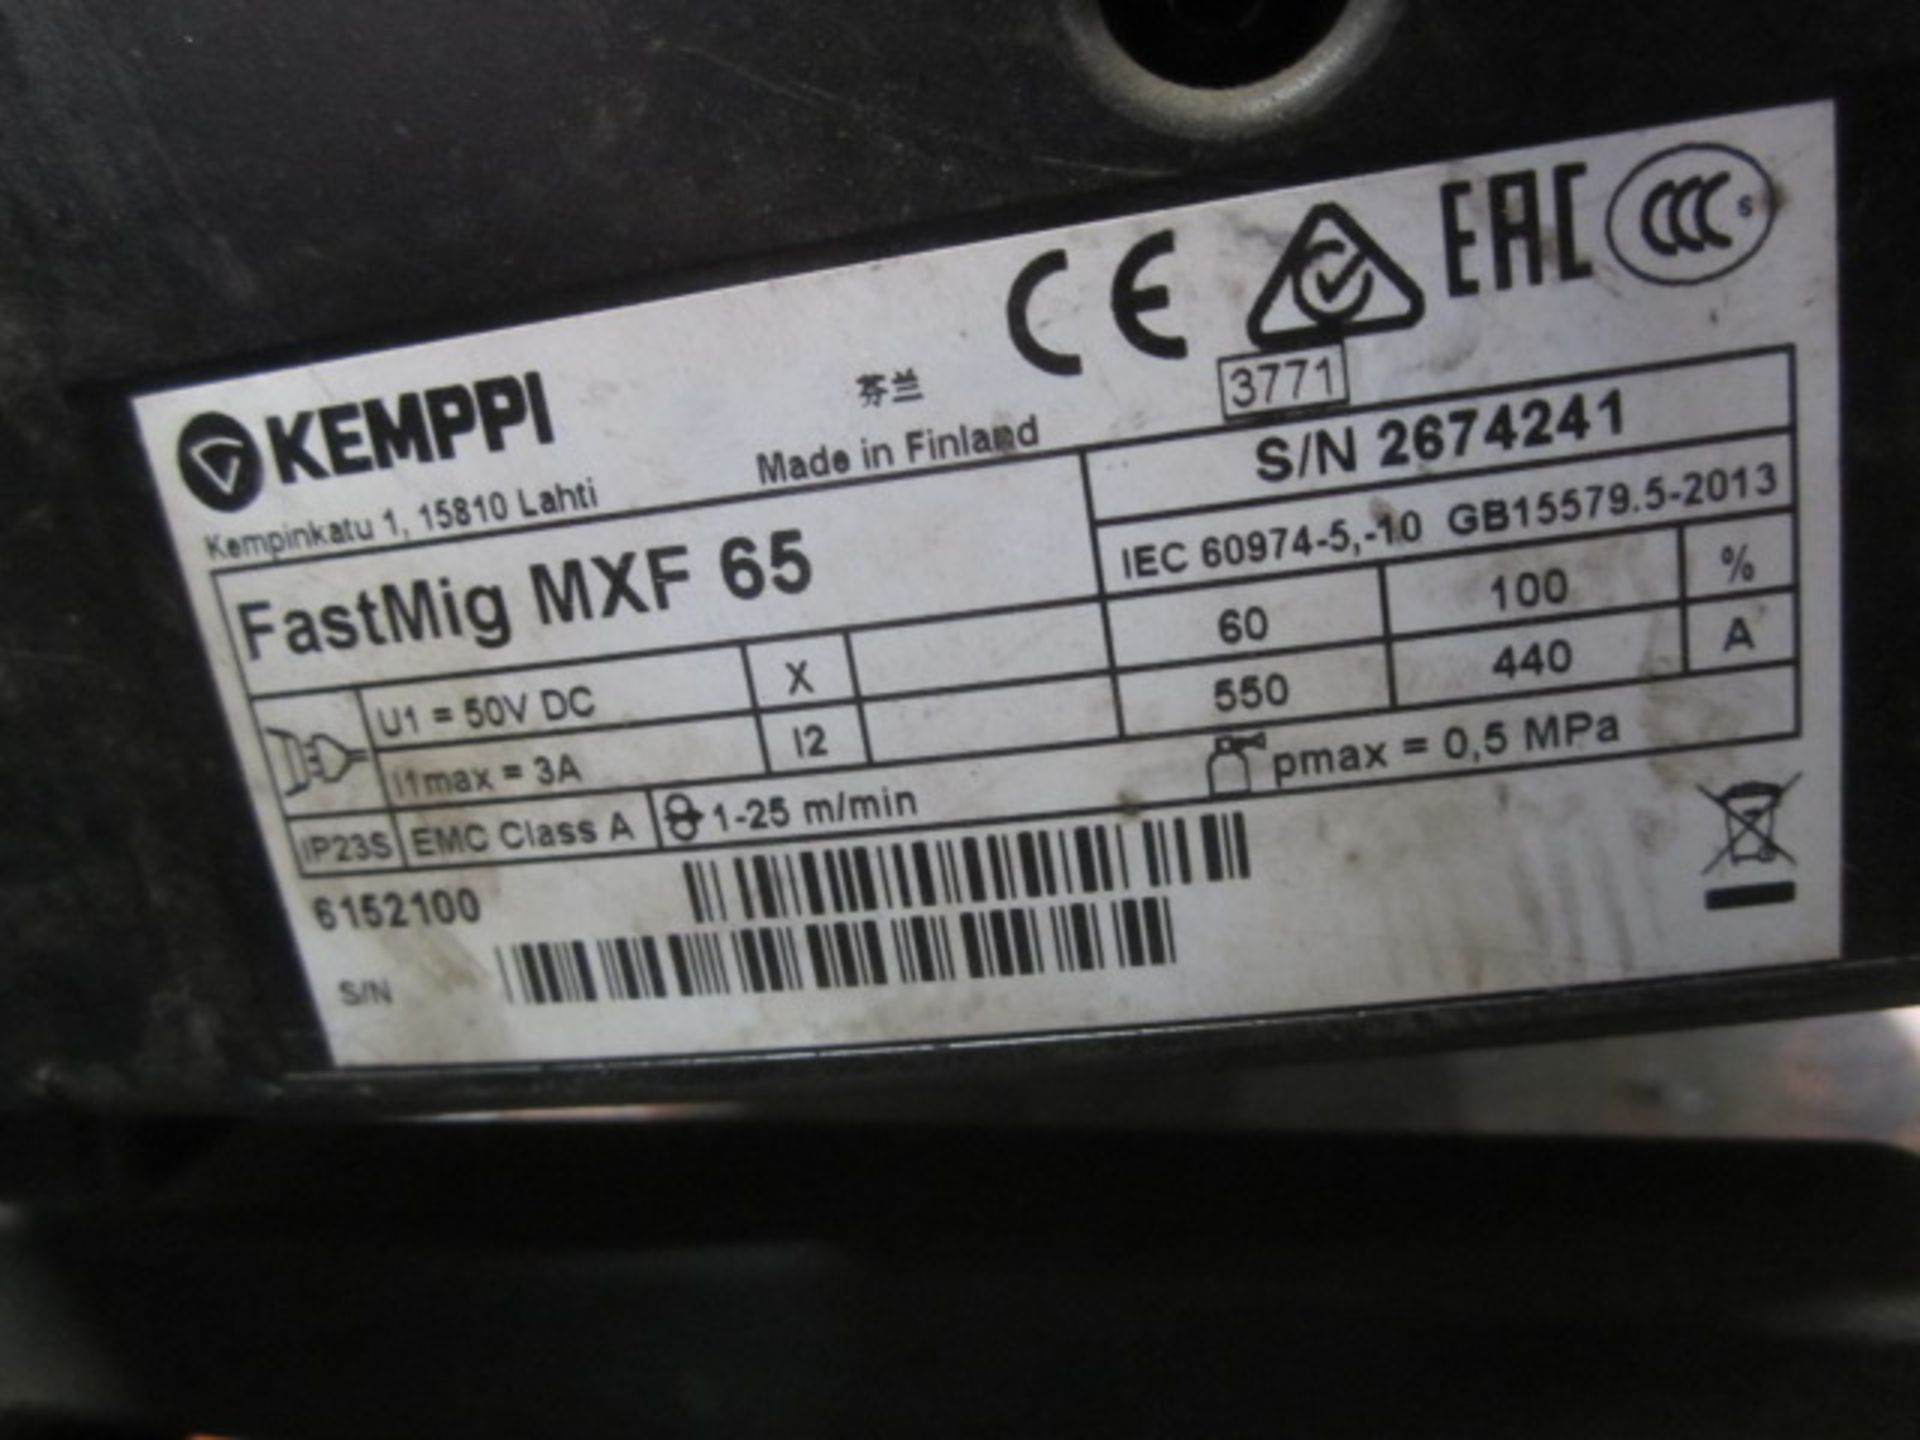 Kemppi Fast Mig M420 mig welder, serial no. 2674258, with Fast Mig MXF65 wire feeder, serial no. - Image 7 of 8